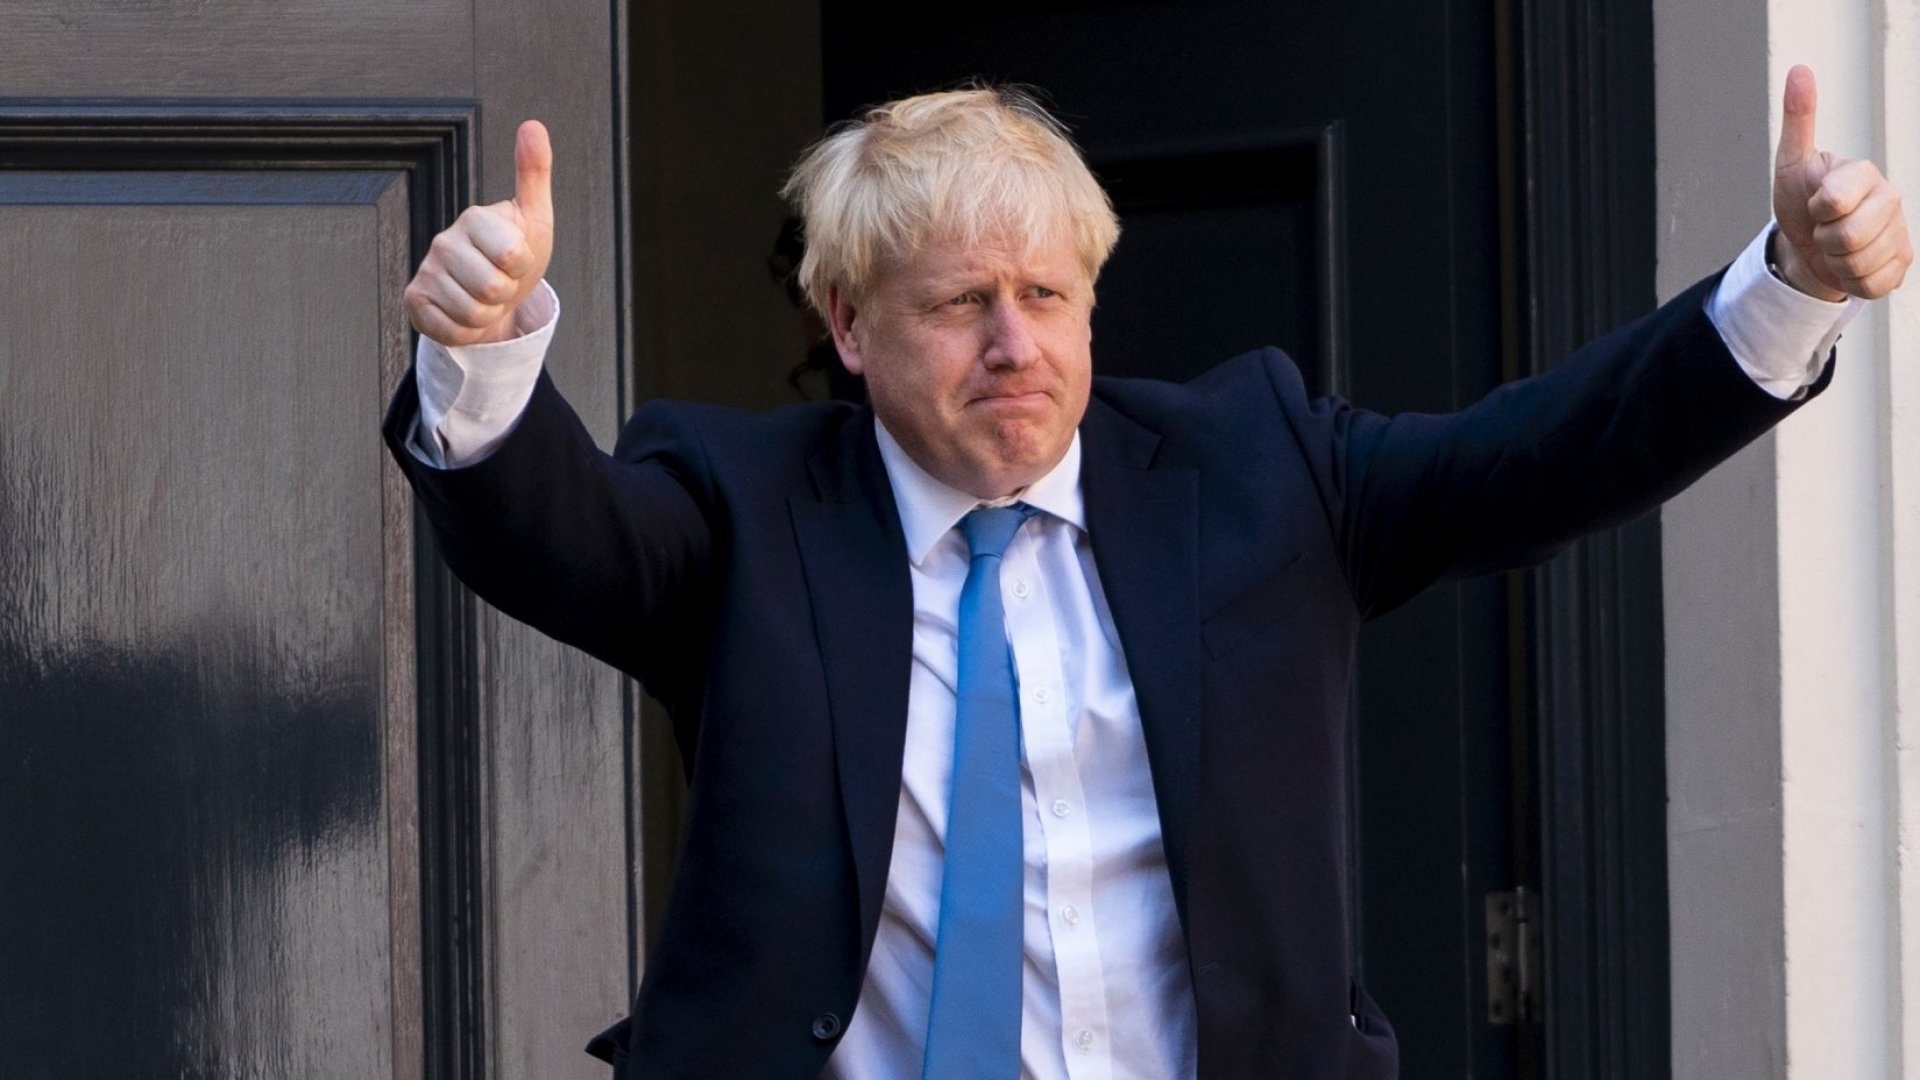 Boris Johnson Has Won the Race to Be the Next U.K. Prime Minister